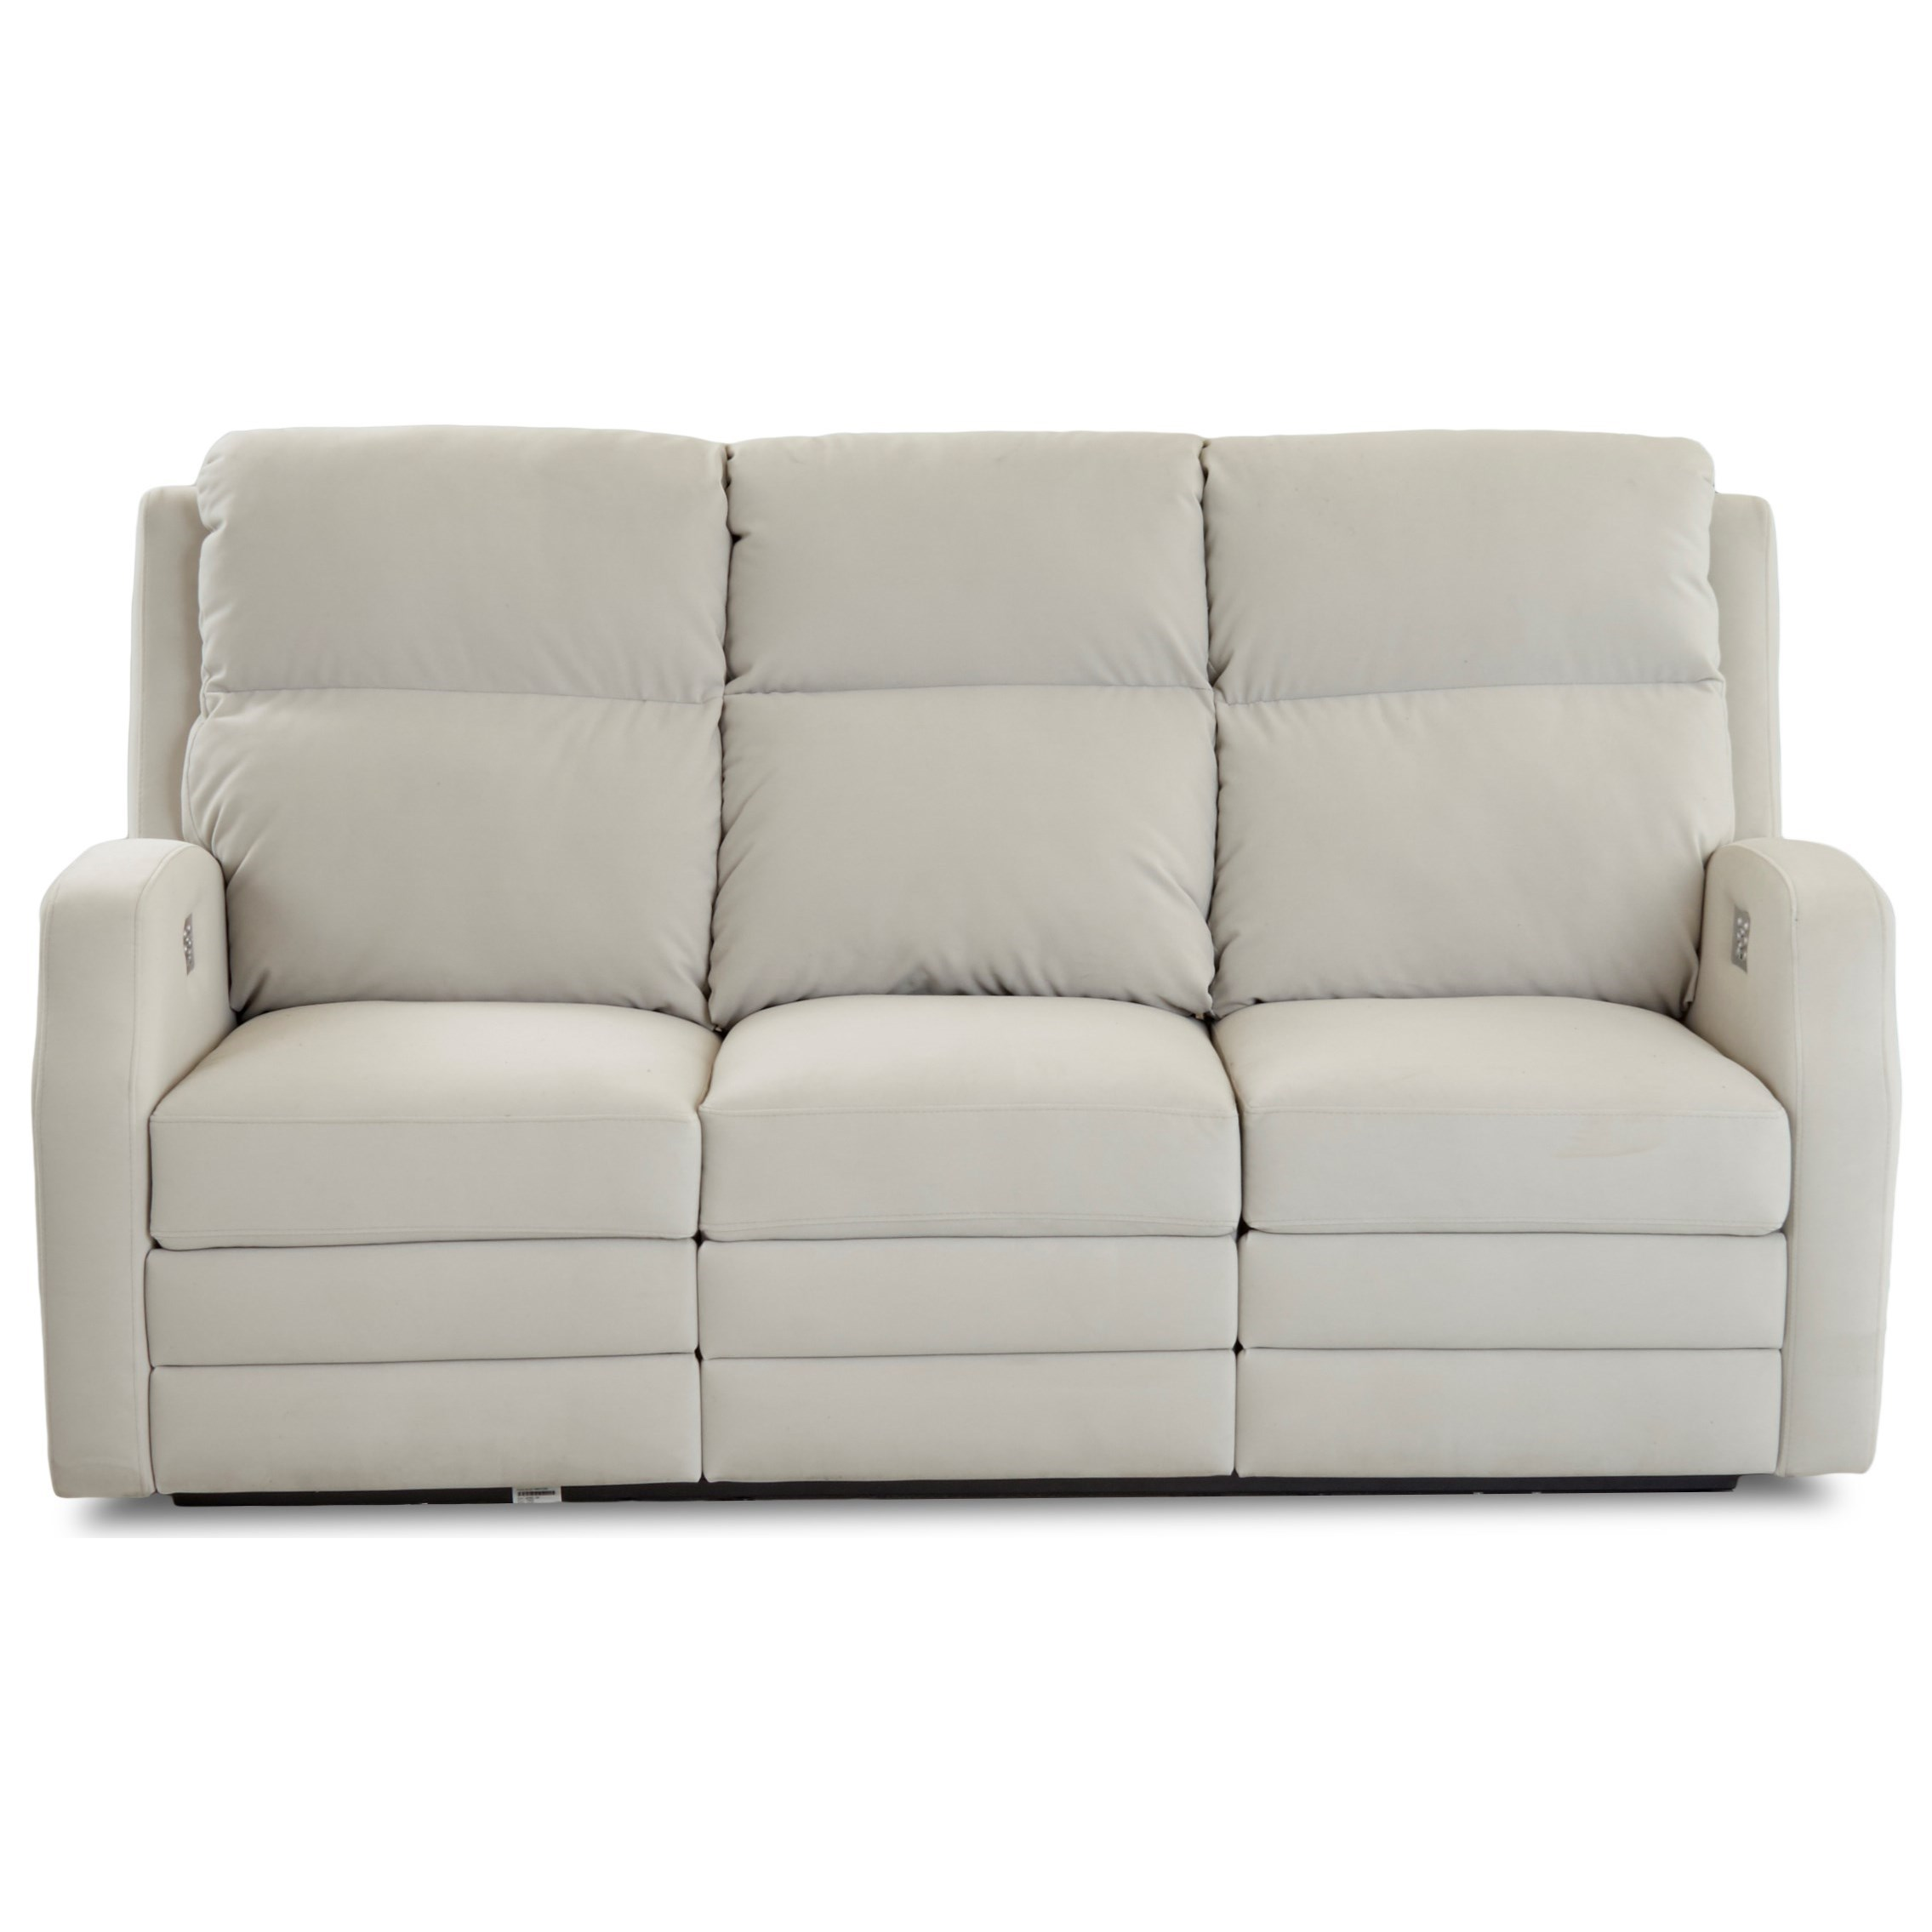 77 Inch Power Reclining Sofa with USB Charging Ports and Power Headrests / Lumbar